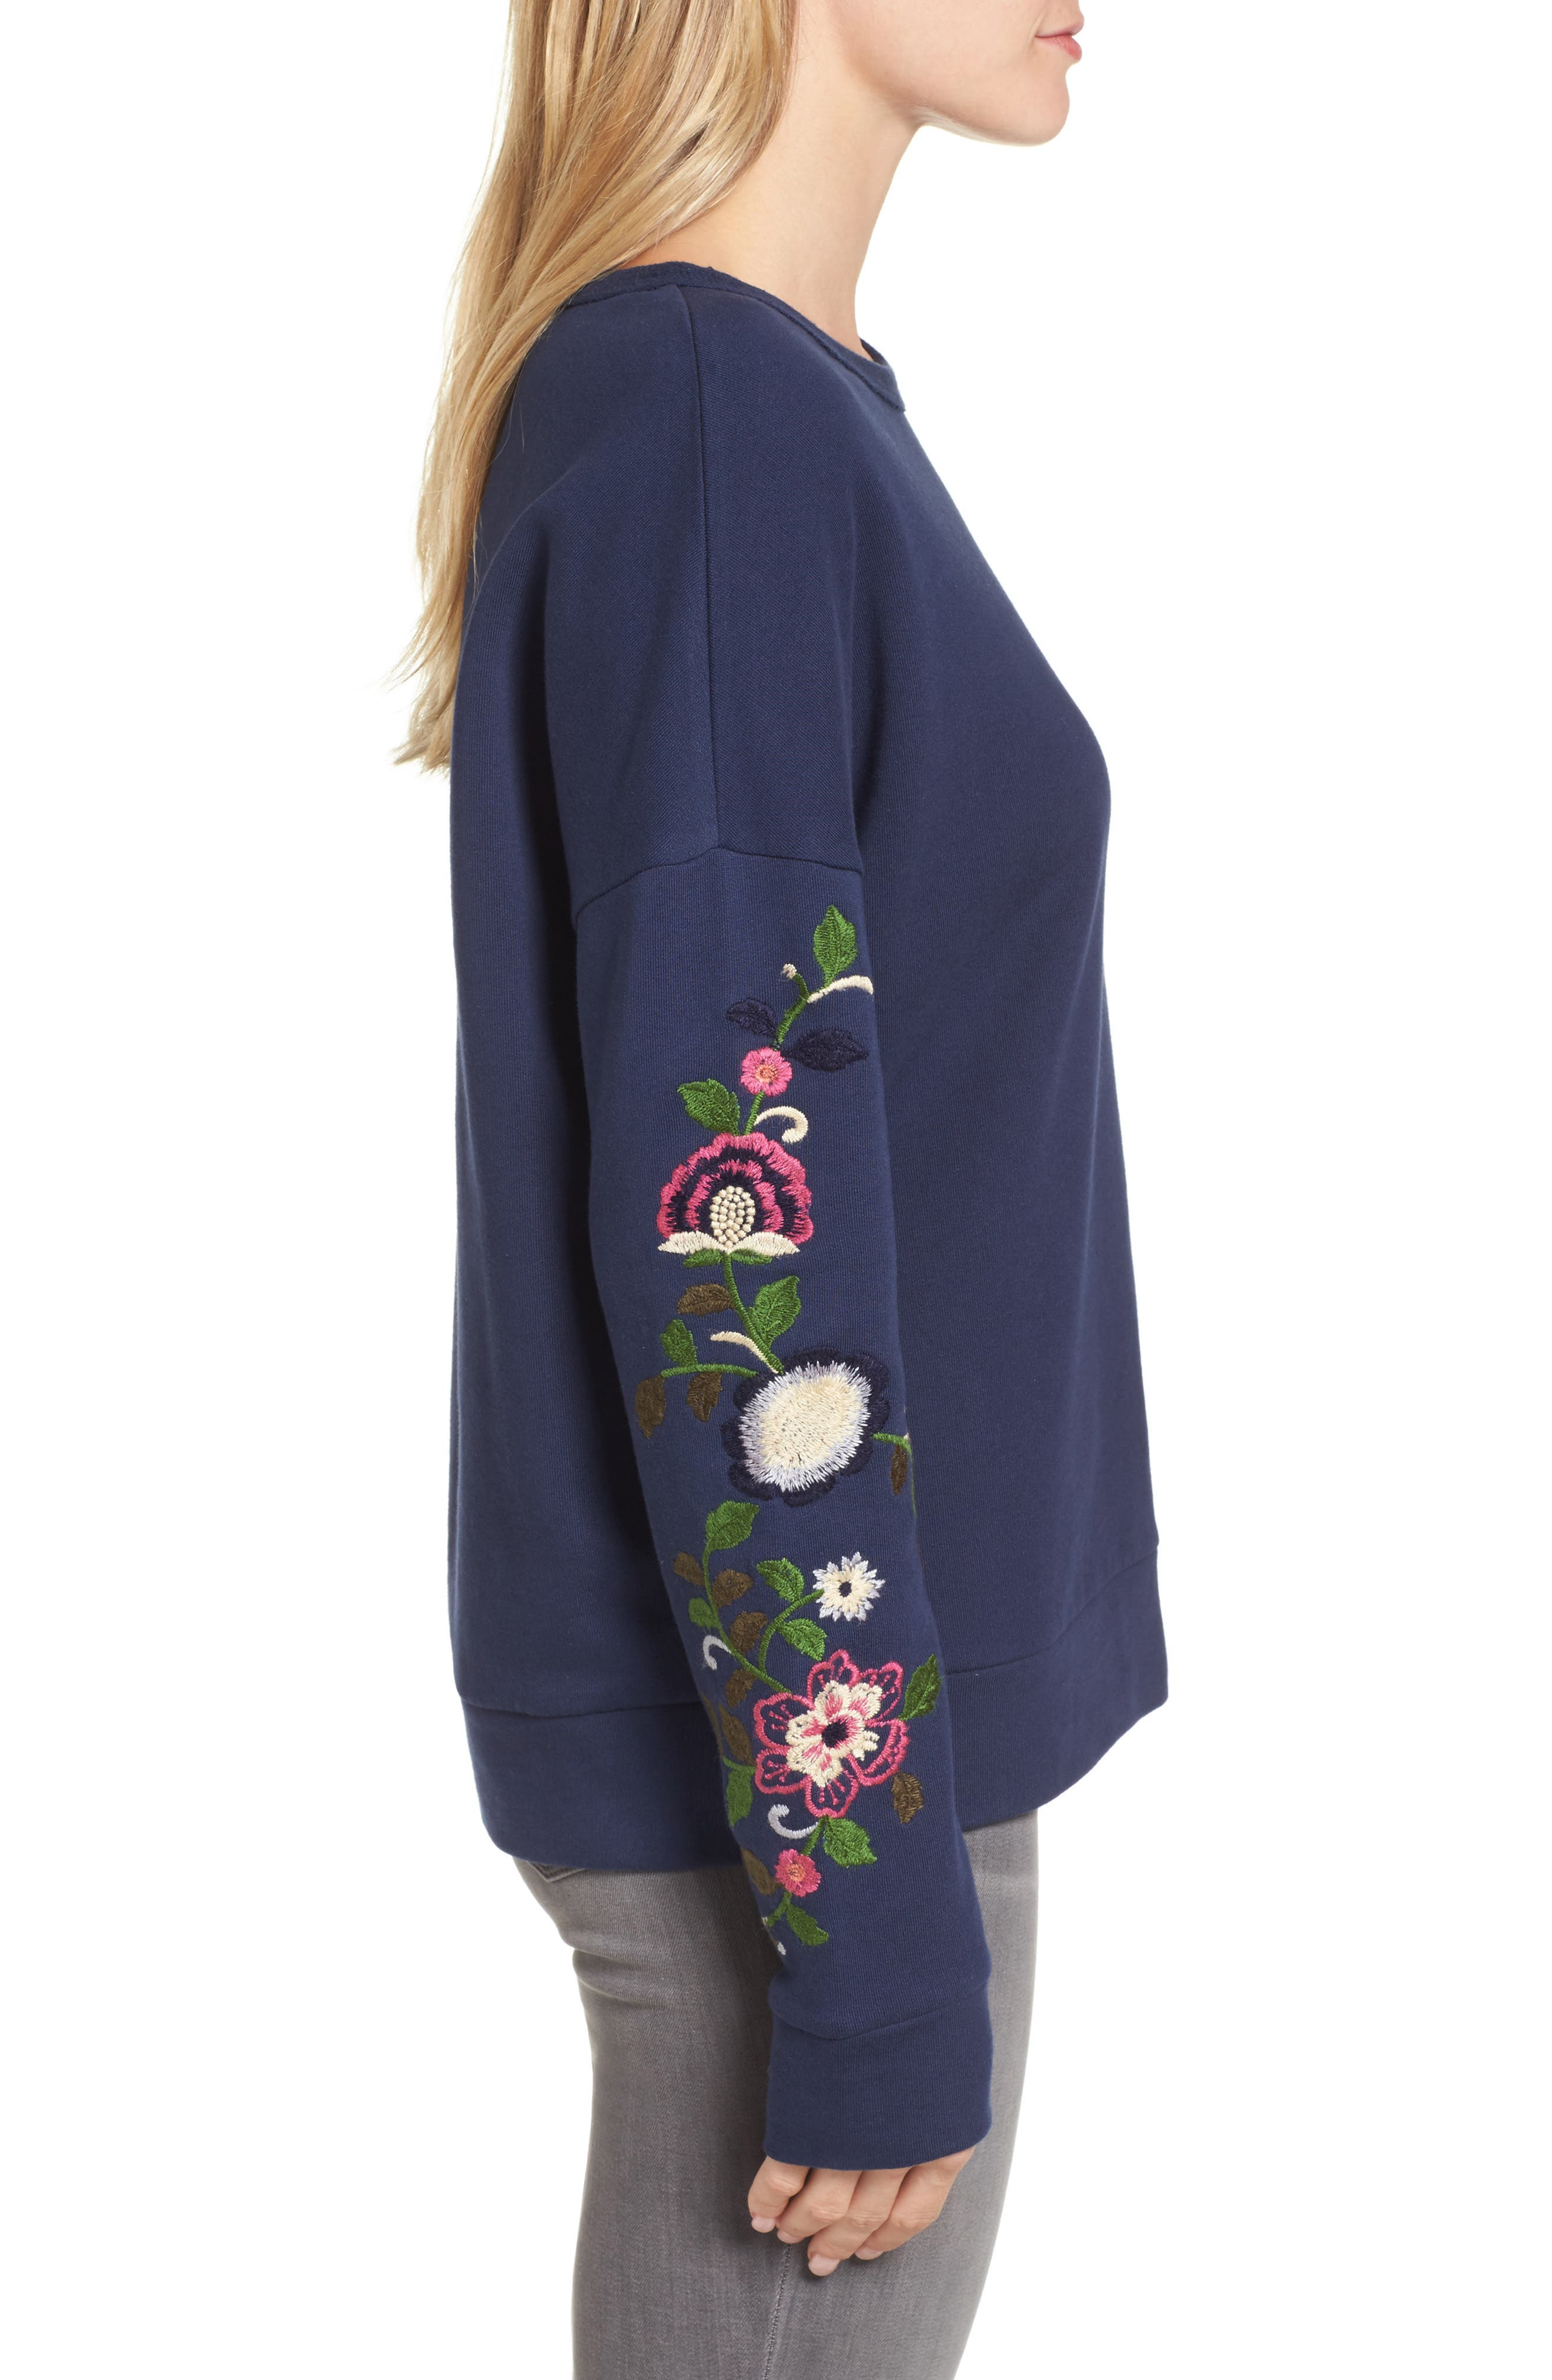 Embroidered Sleeve Sweatshirt,                             Alternate thumbnail 3, color,                             Navy- Rose Floral